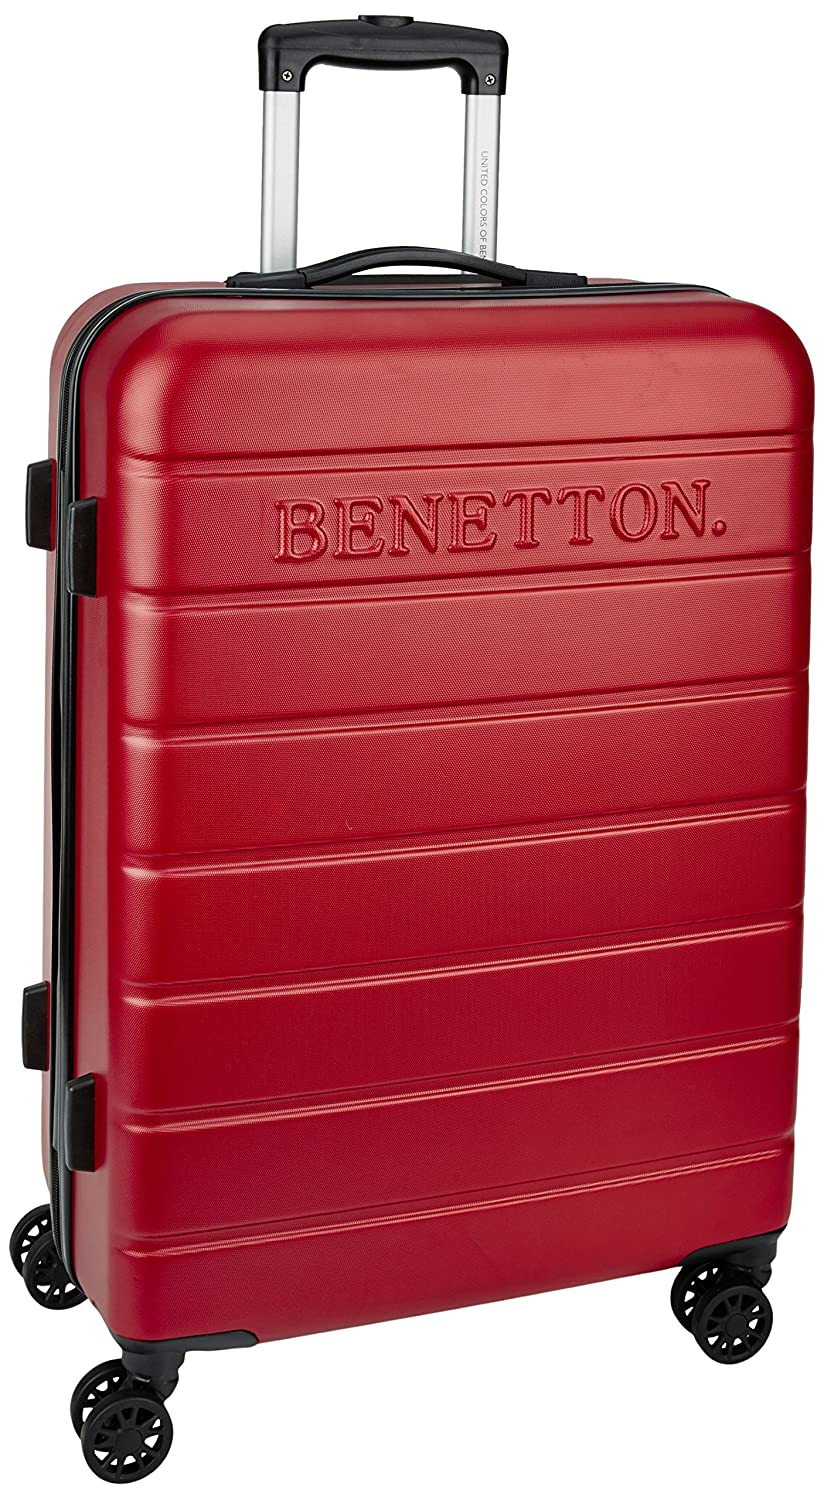 really cheap info for shop Buy United Colors of Benetton ABS 102 Liters Red Suitcases ...